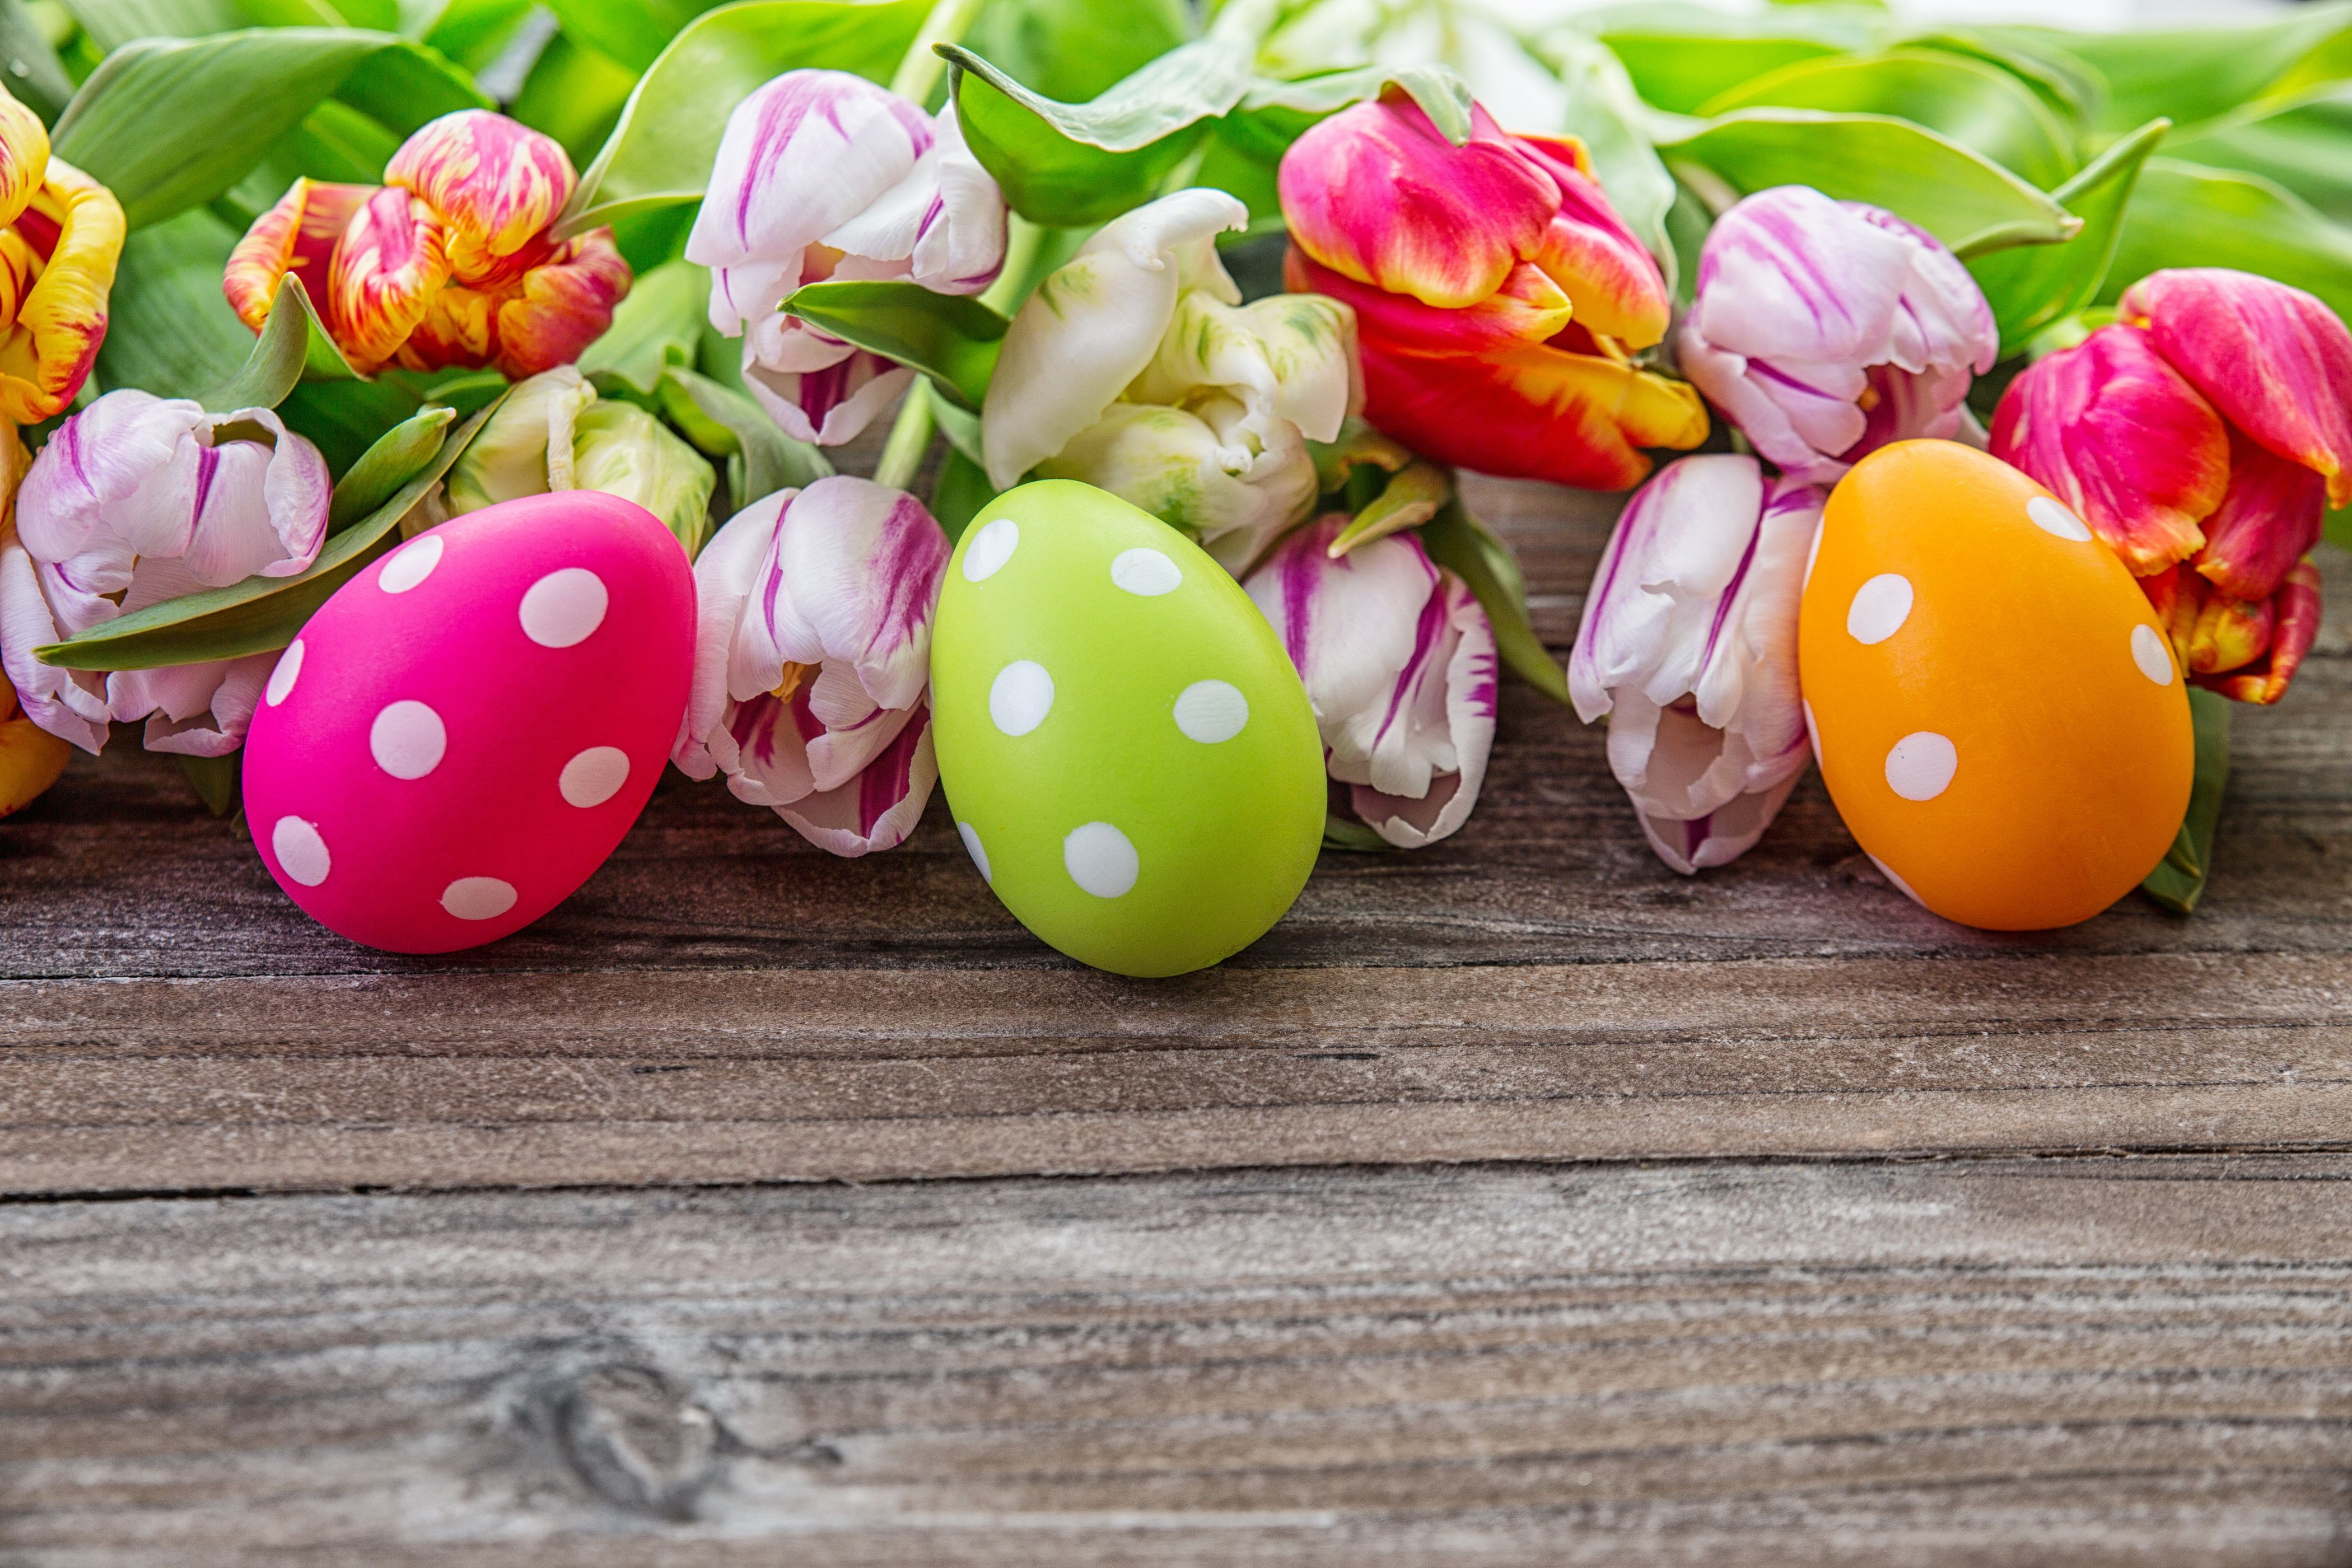 4200x2800 Picture Easter Eggs Tulips Flowers Holidays